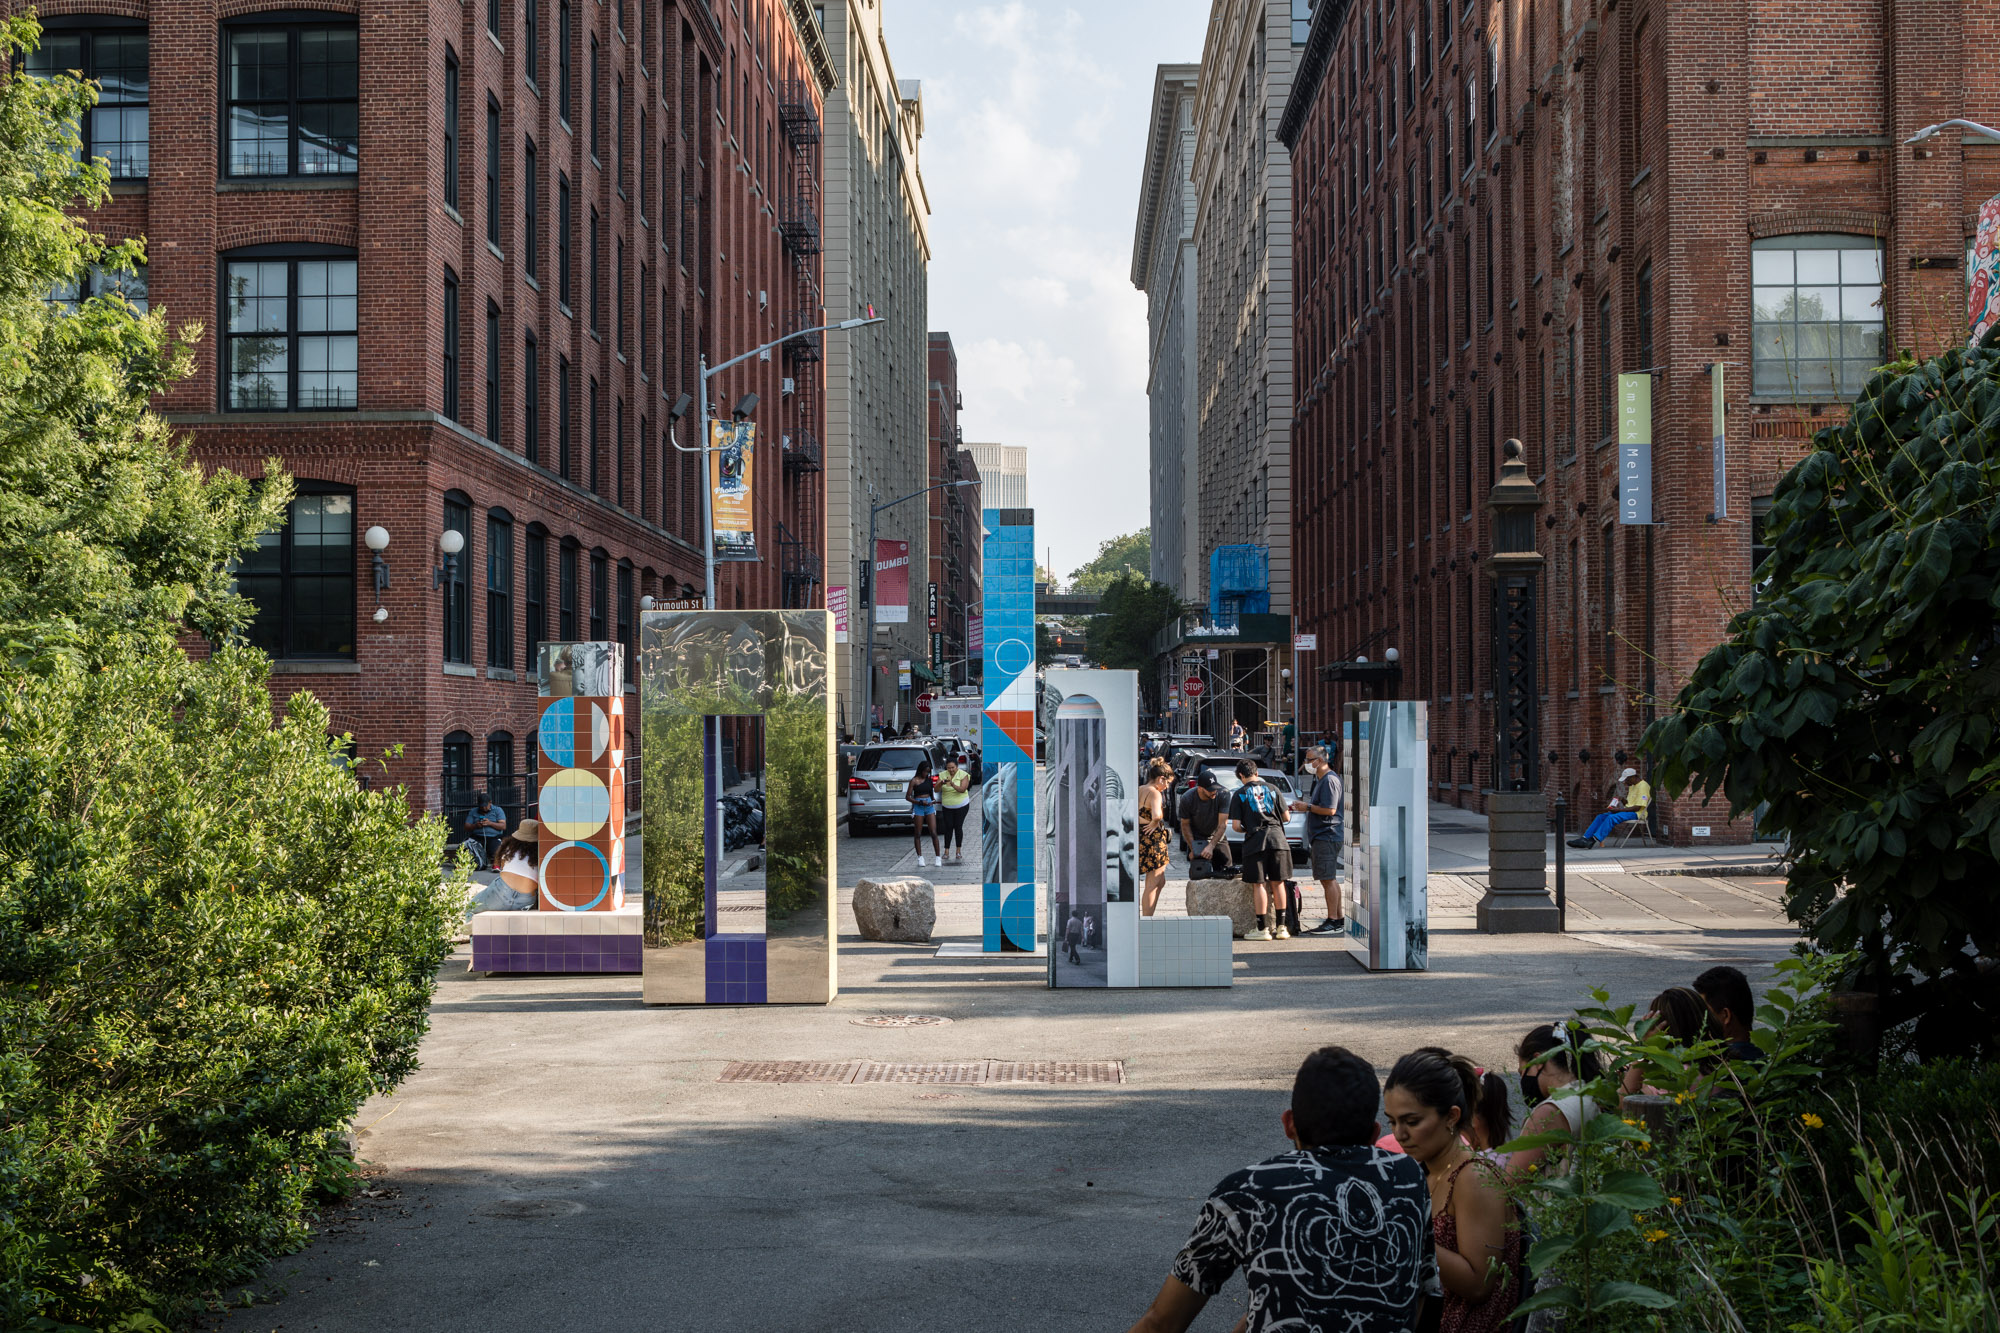 A new work by Claudia Wieser invites the public to become 'actors in their own urban narrative'. Five large-scale sculptures in Brooklyn create a space of contemplation and encounter<br />